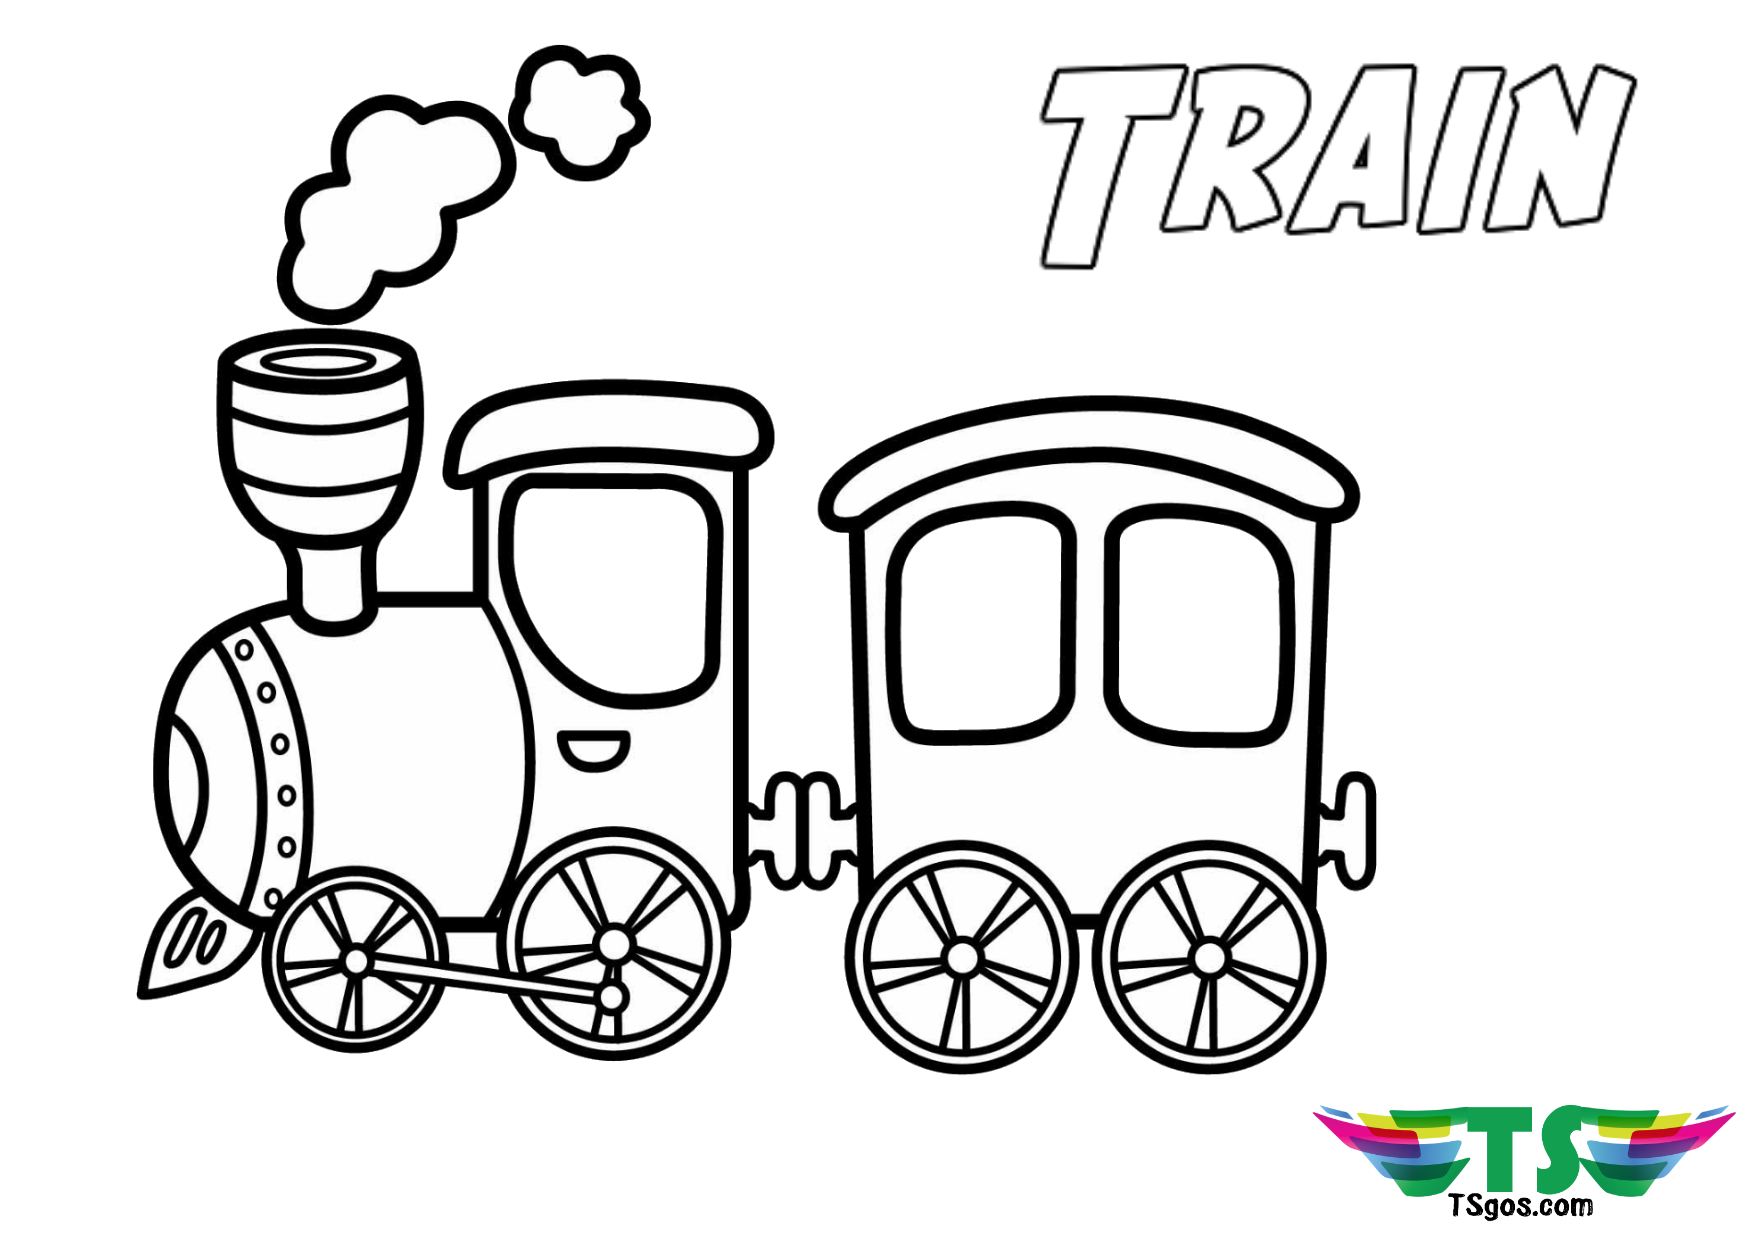 Train Coloring Page For Preschool And Toddlers In 2020 Train Coloring Pages Cars Coloring Pages Easy Coloring Pages